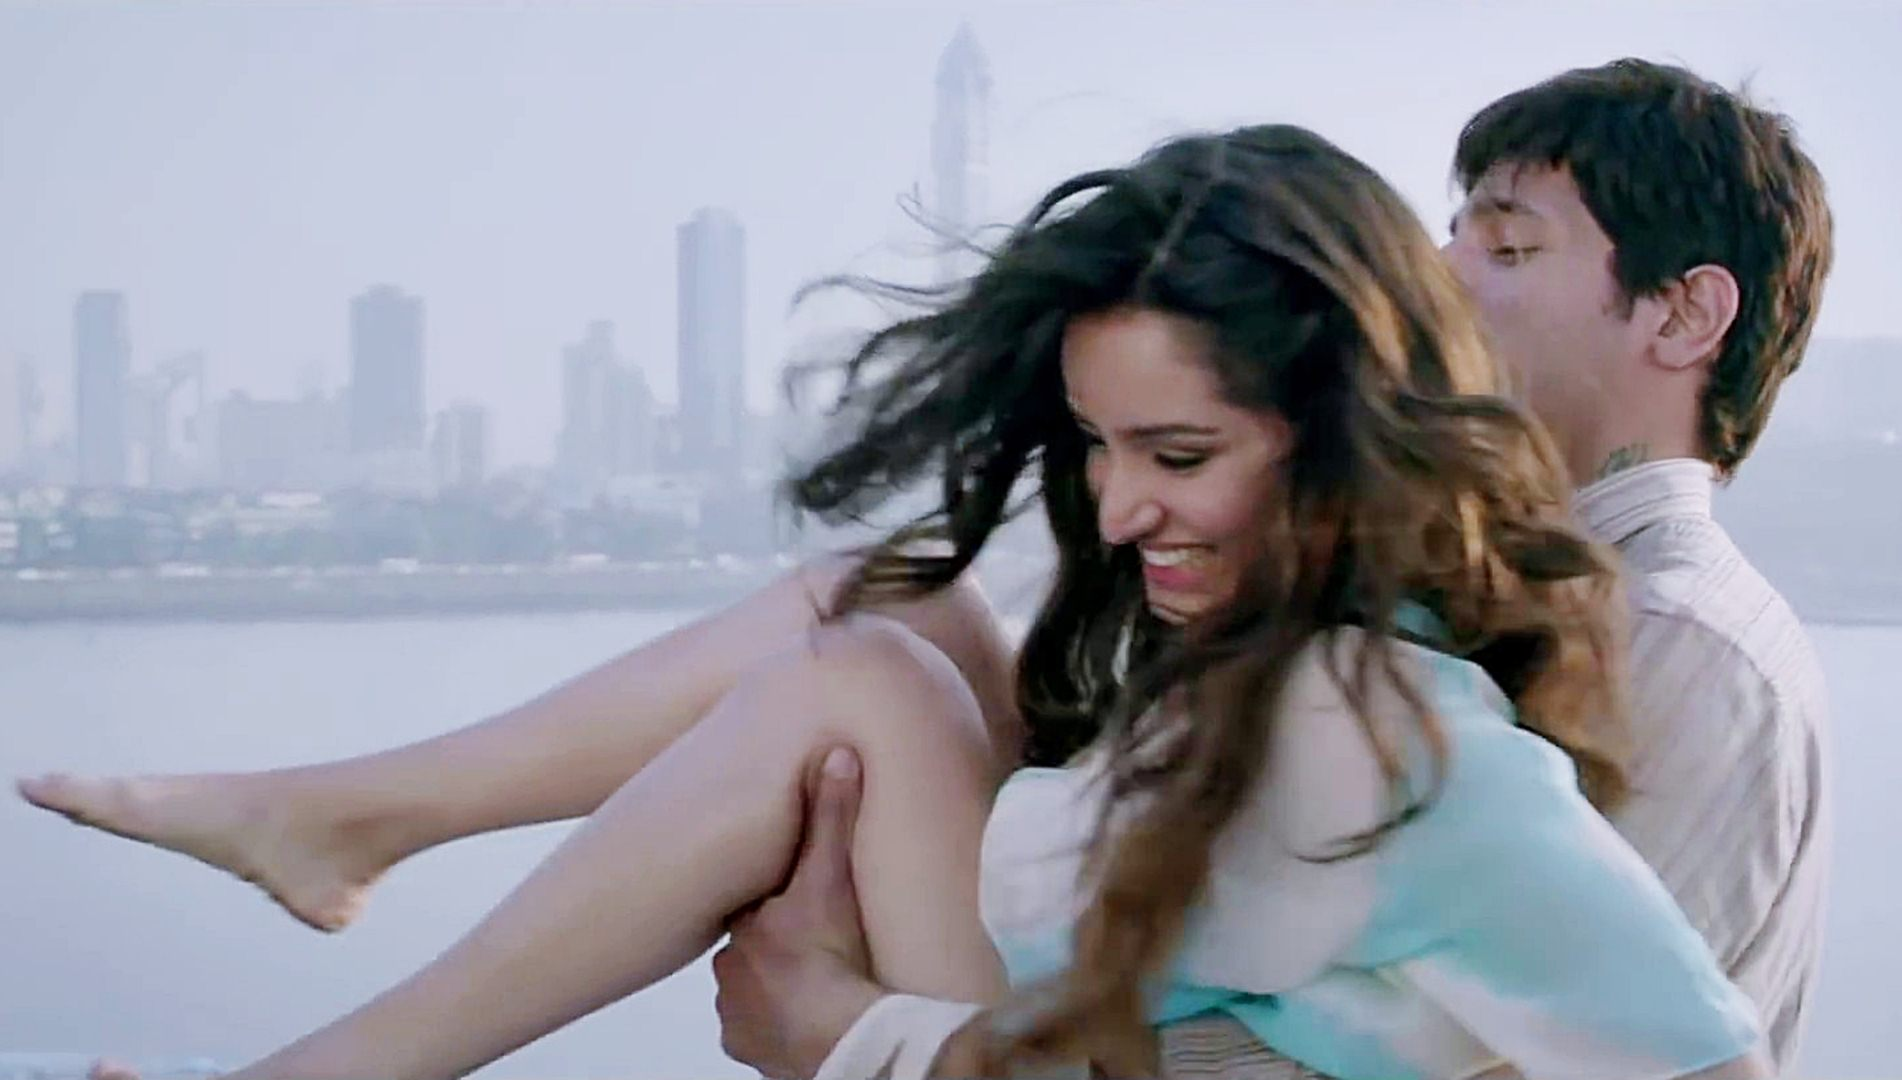 Ek Villain Love Hd Wallpaper : Ek Villain - Movie HD Wallpapers